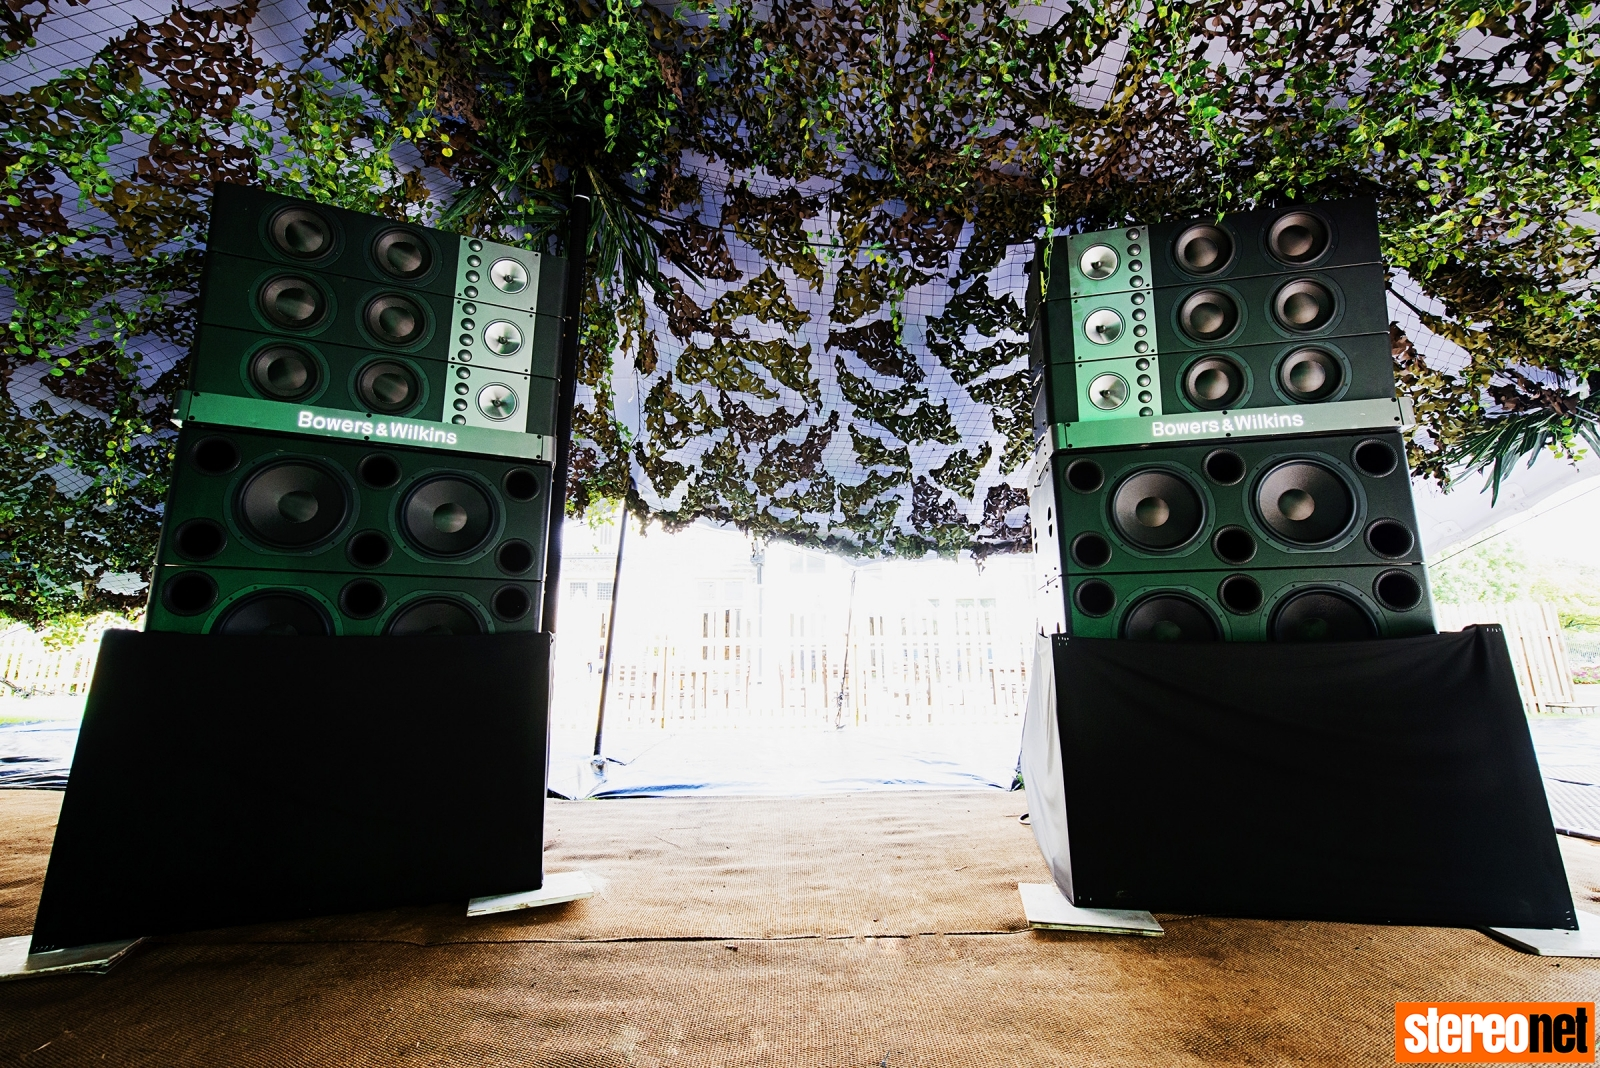 Bowers and Wilkins Sound System Festival of Sound